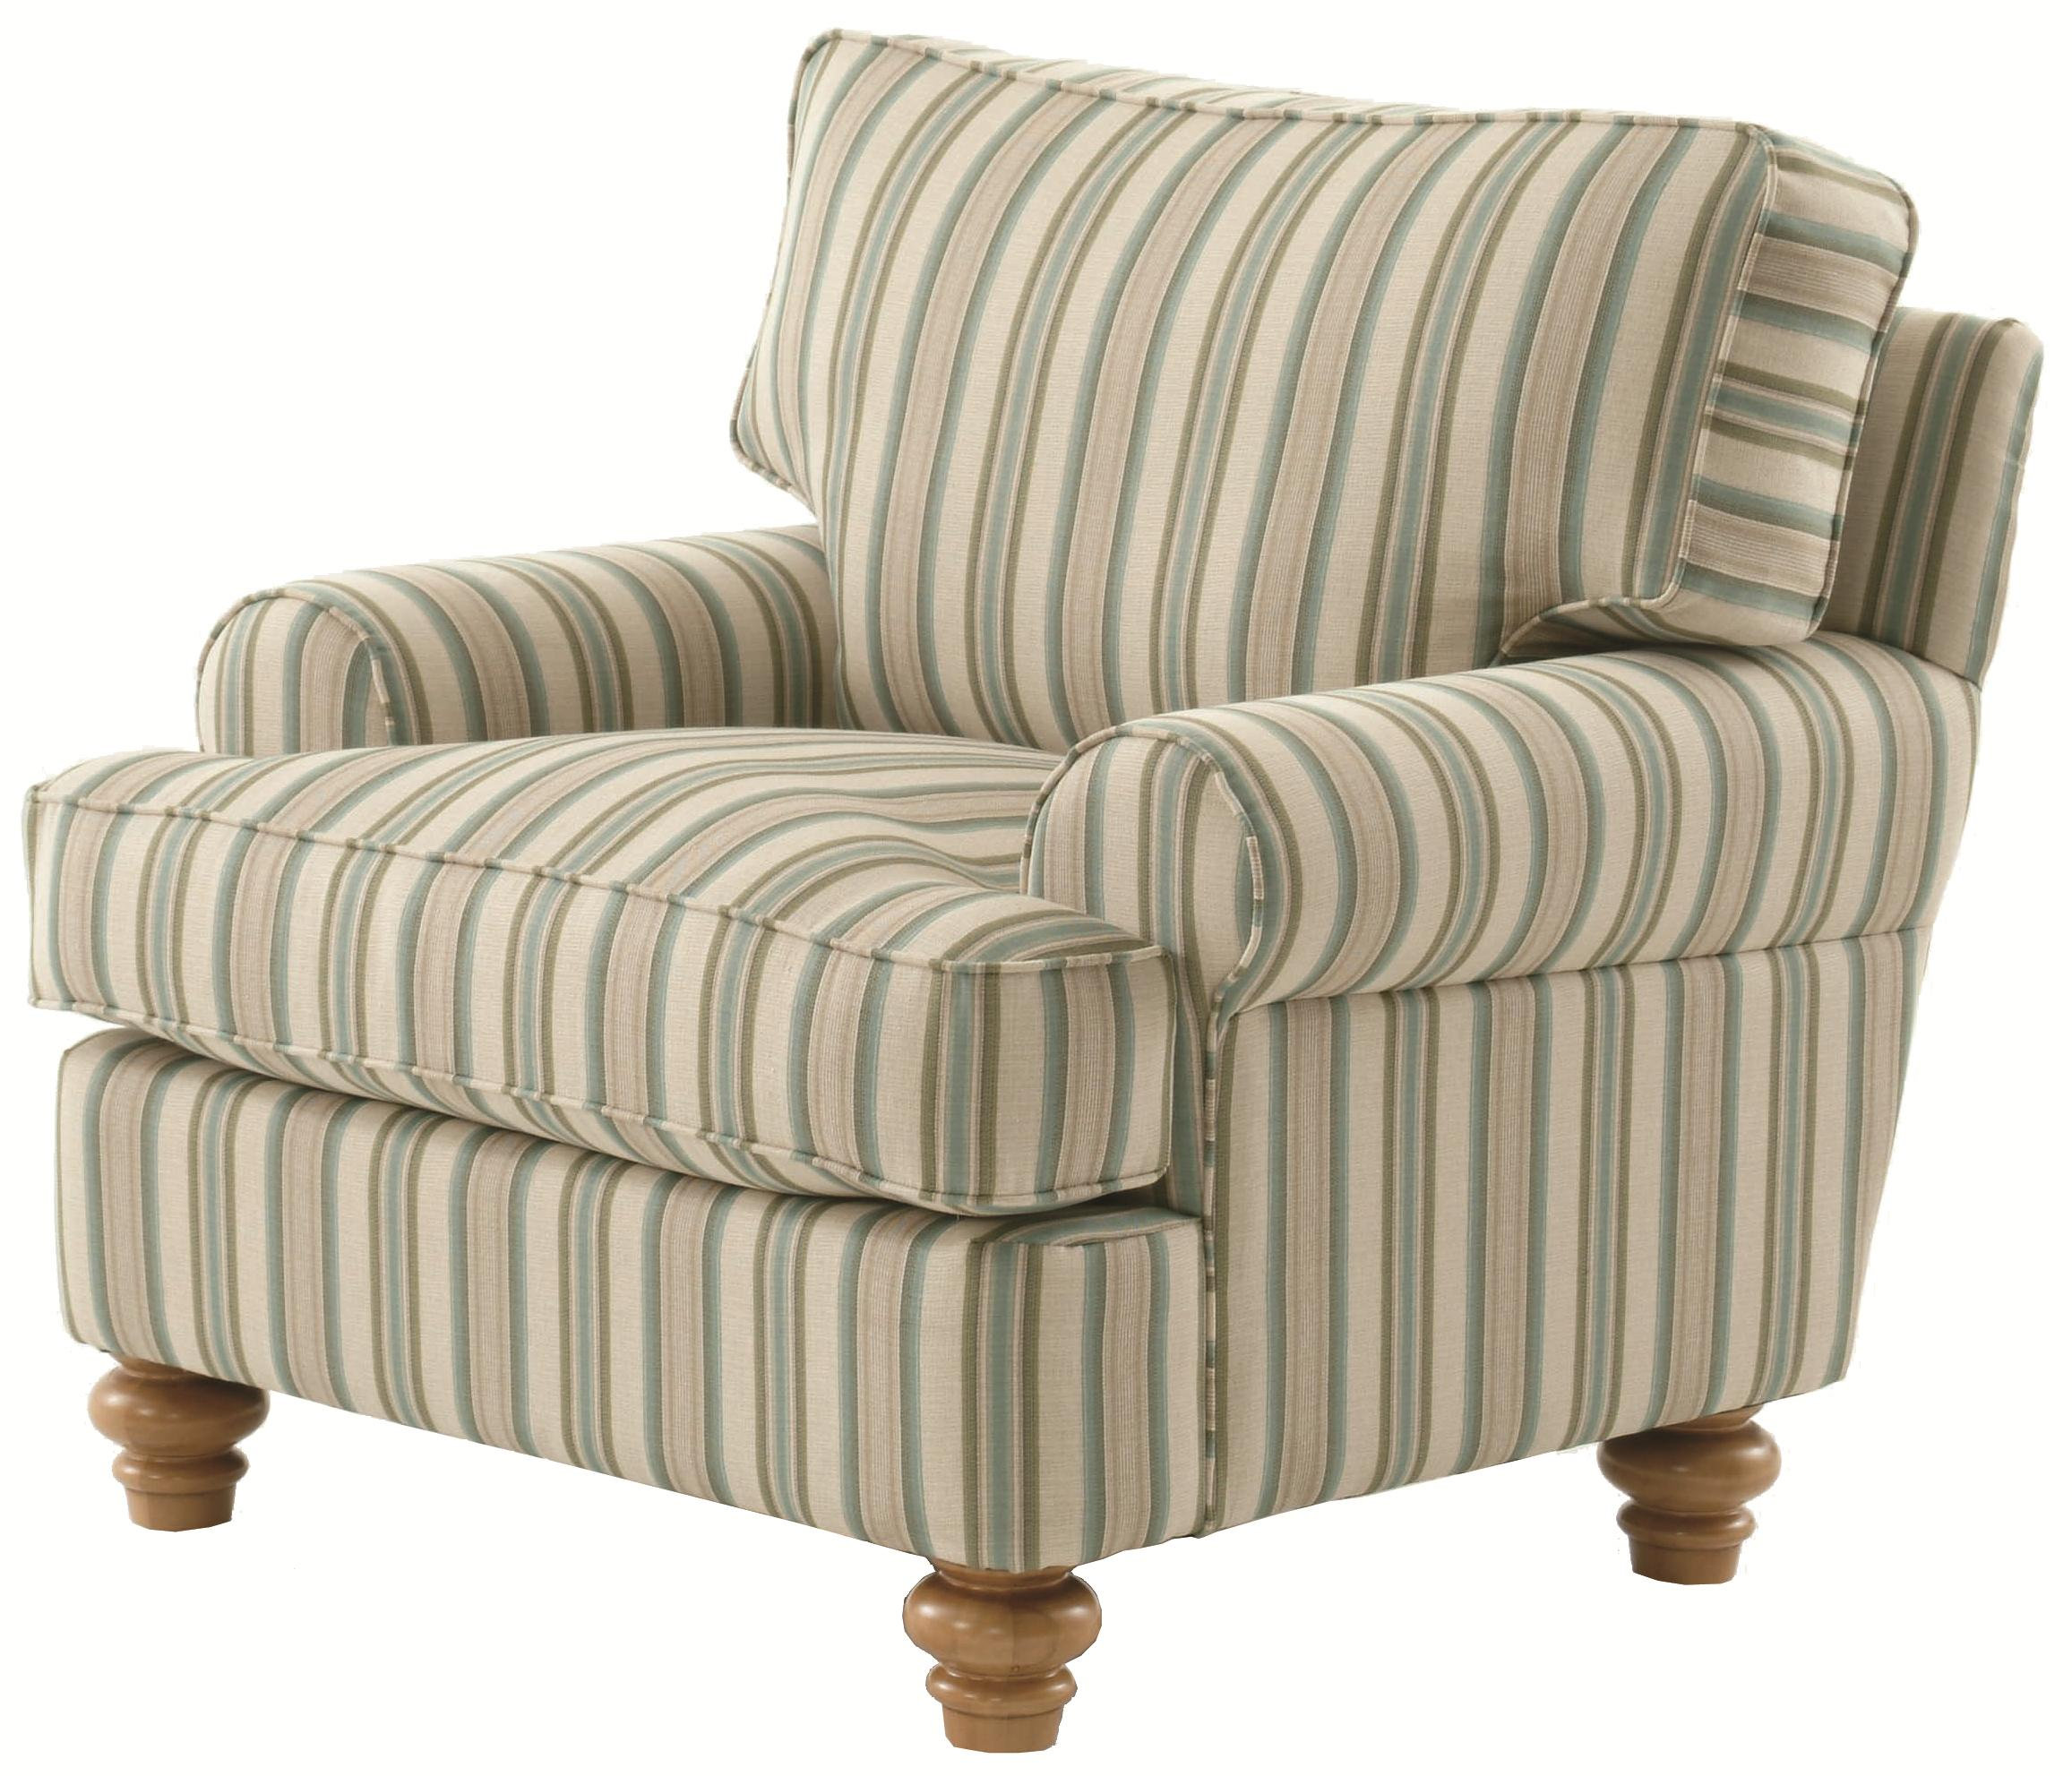 773 Upholstered Accent Chair by Braxton Culler at Alison Craig Home Furnishings